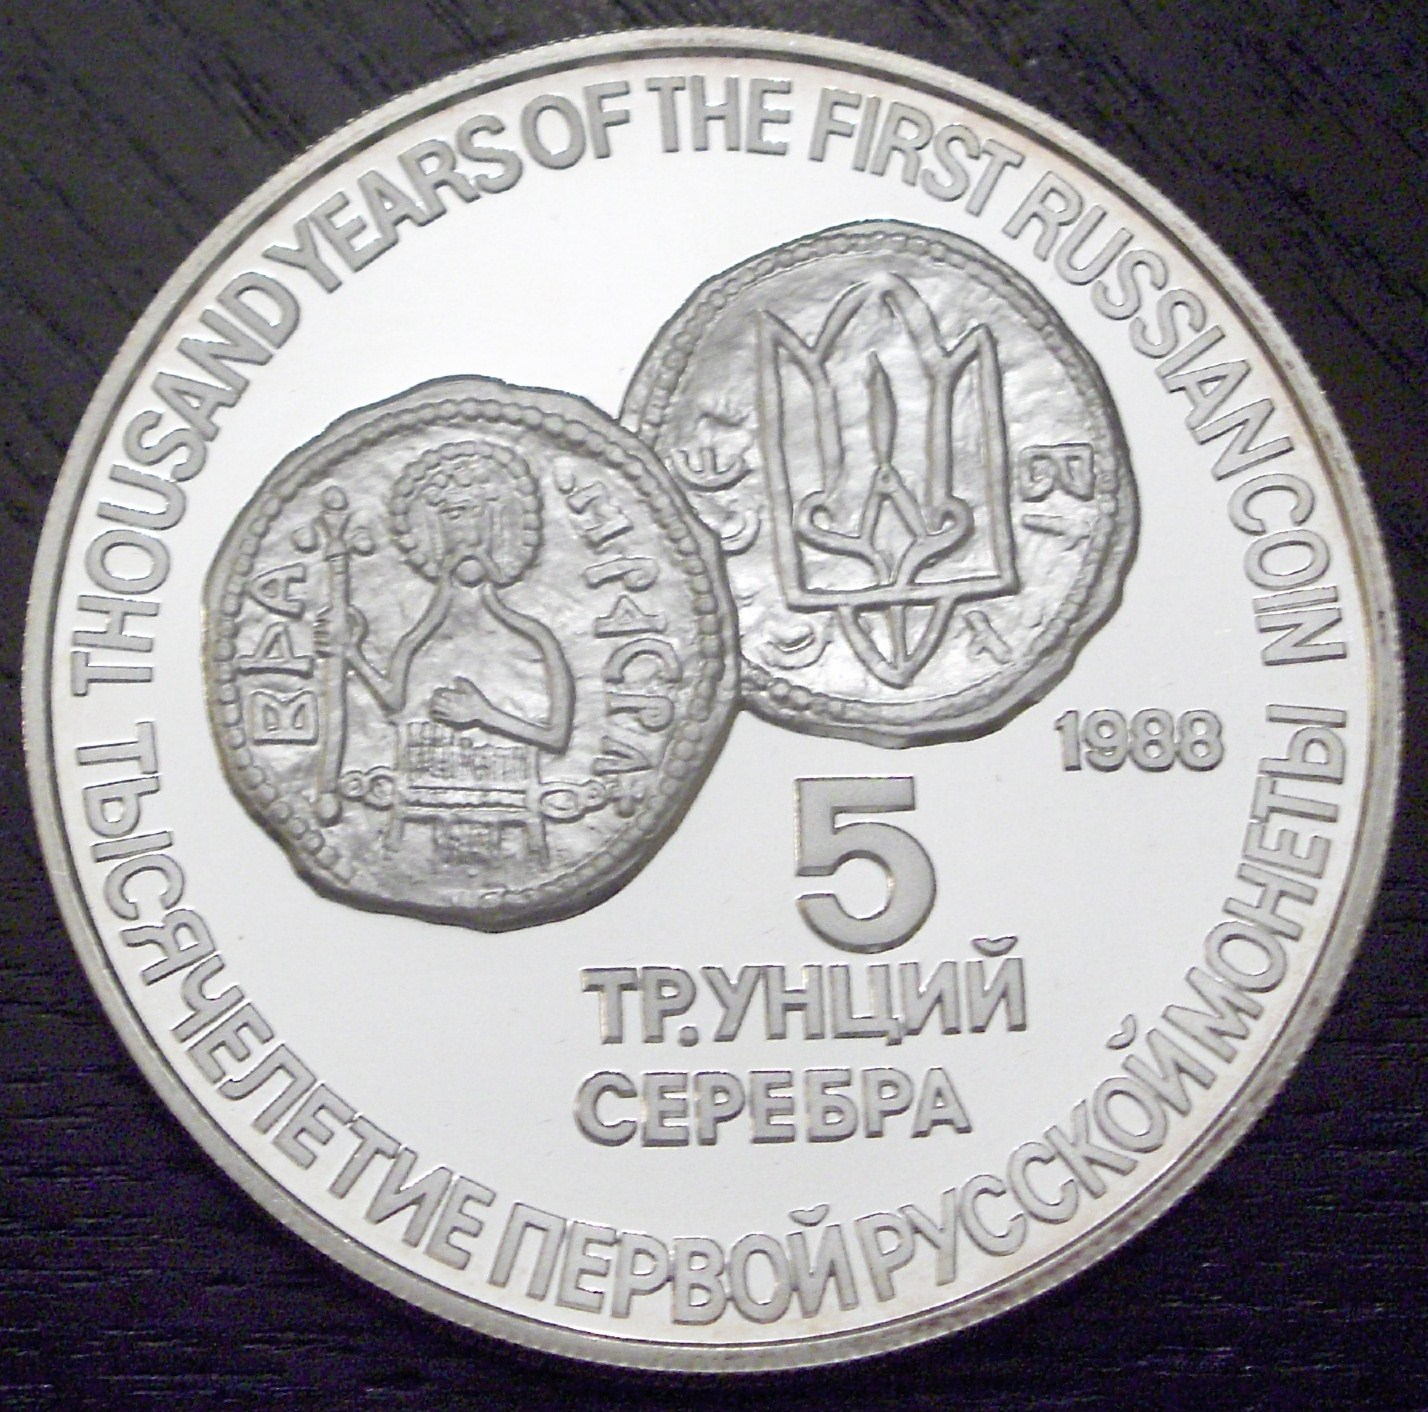 Russia 1988 5 Ounces Coins back